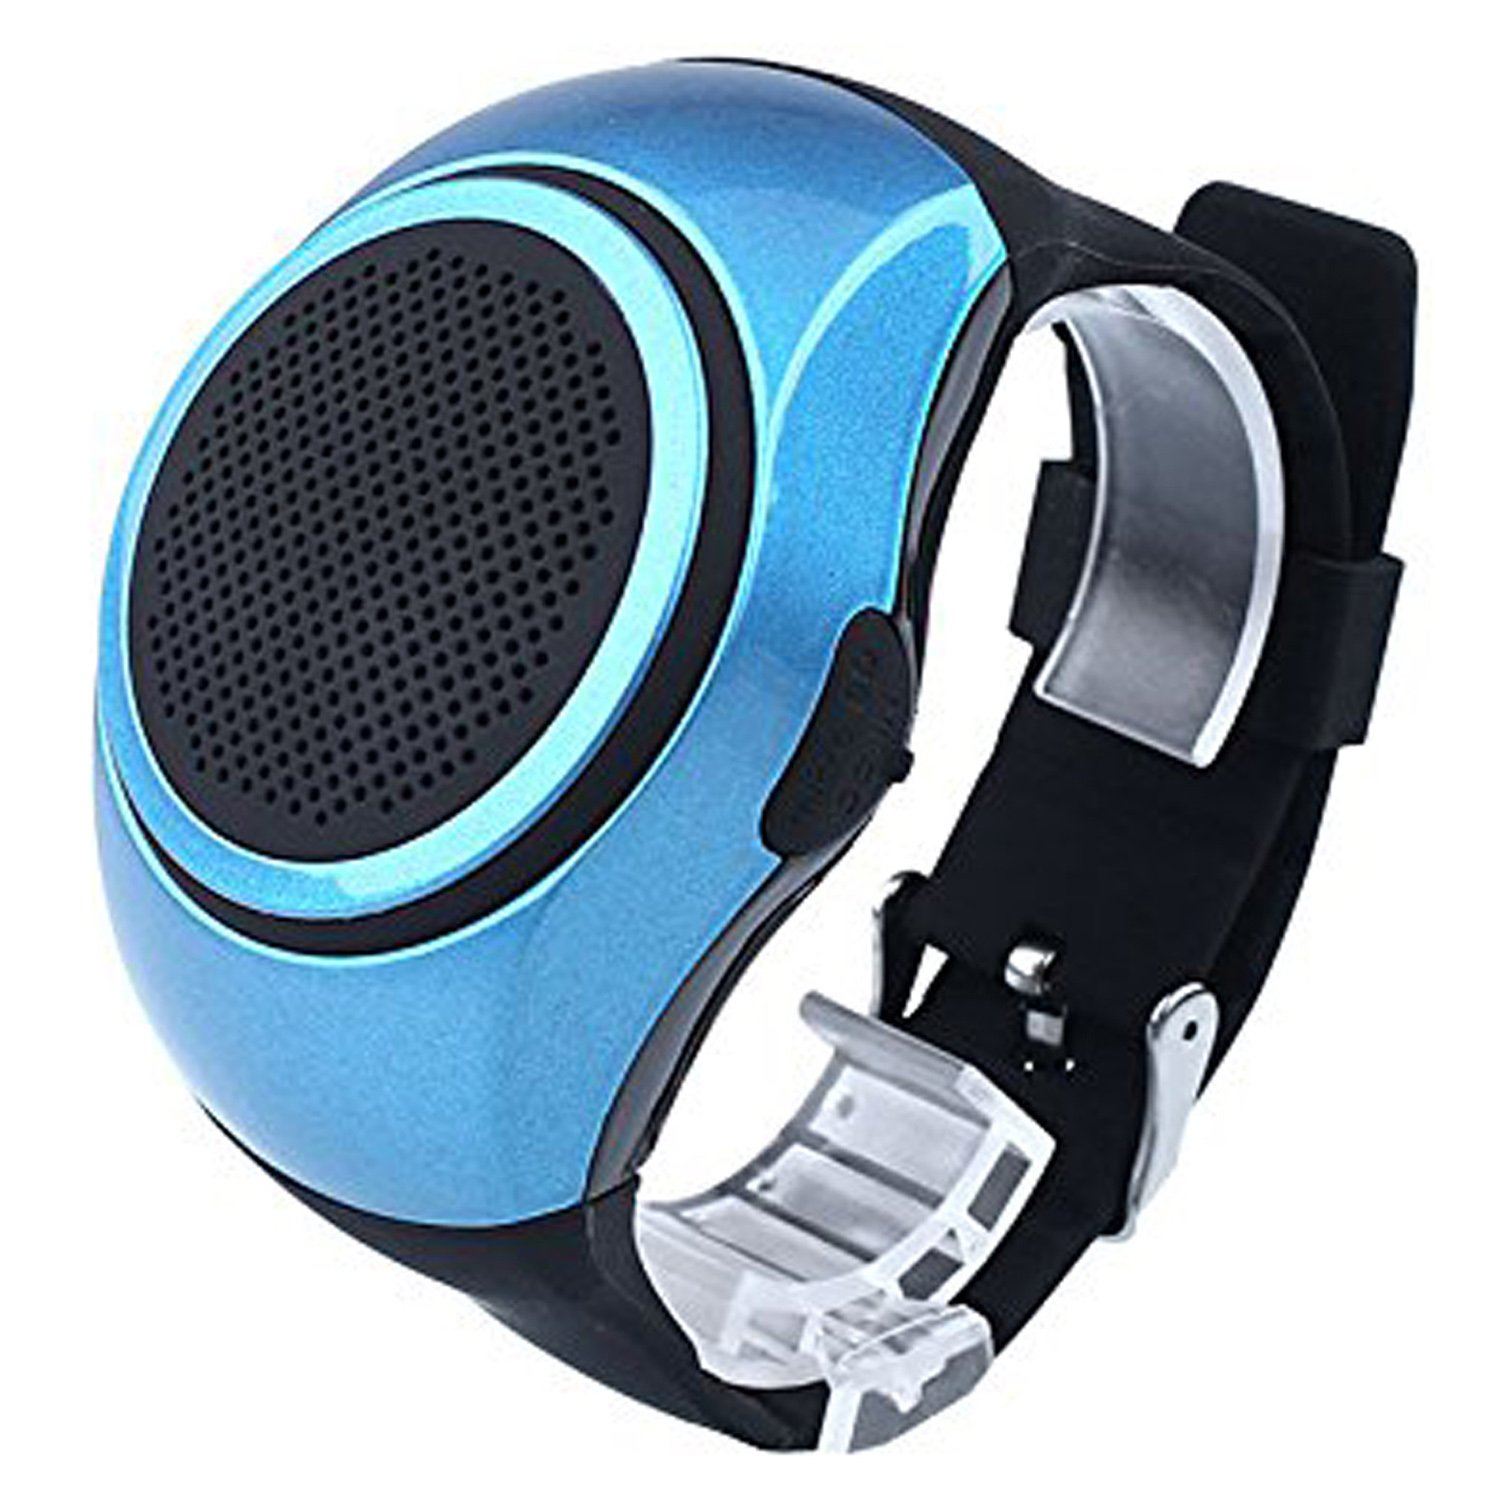 Bluetooth Speaker Watch Wearable Wireless Speaker Mini Sports Speaker Support TF Card MP3 Music Player FM Radio Handsfree Call Wristband For Android Samsung LG HTC Motorola Men Boy Girl Kids Blue